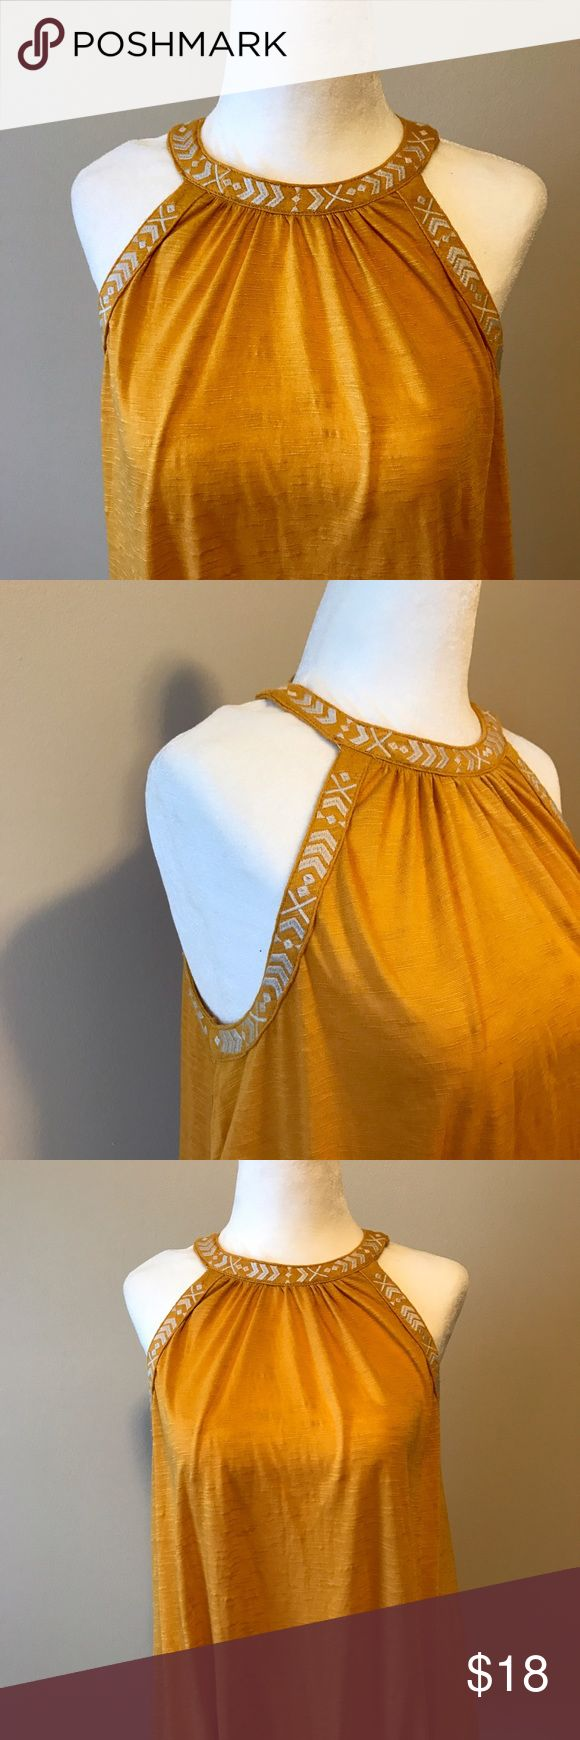 Rue 21 Mustard Colored Tank Top New with tags. Very soft fabric. Rue 21 Tops Tank Tops